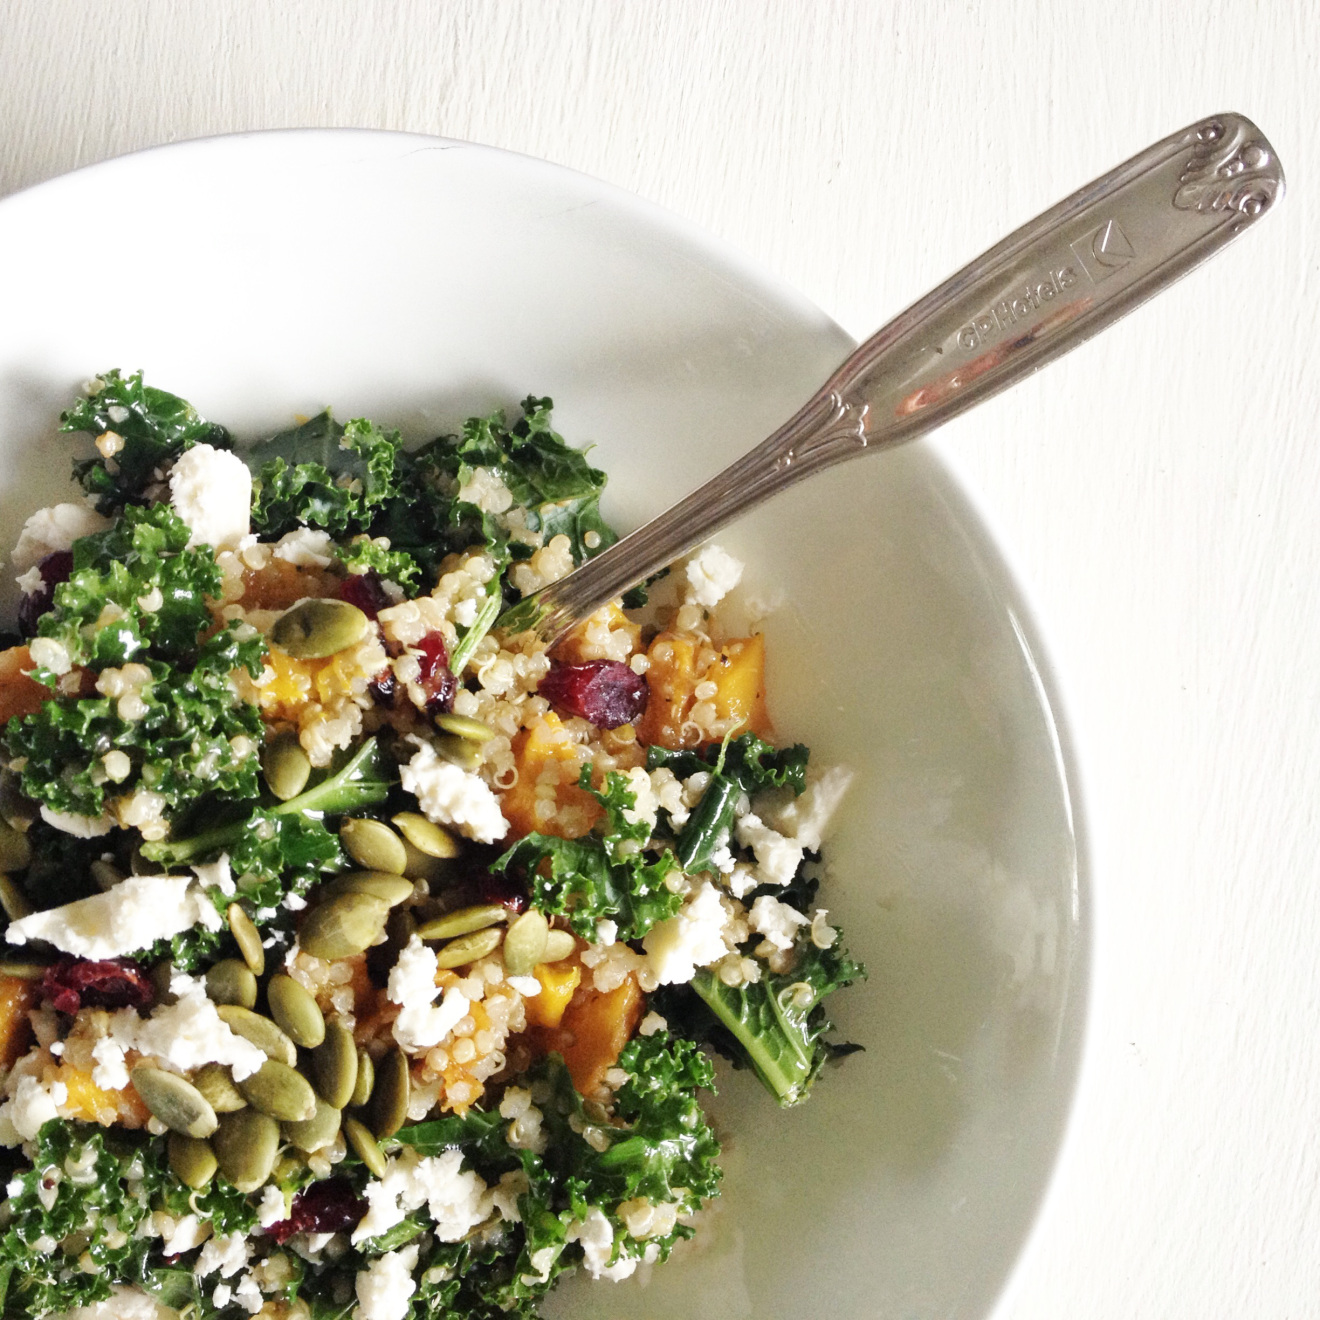 ROASTED PUMPKIN, KALE, AND QUINOA SALAD BY FRAICHE NUTRITION